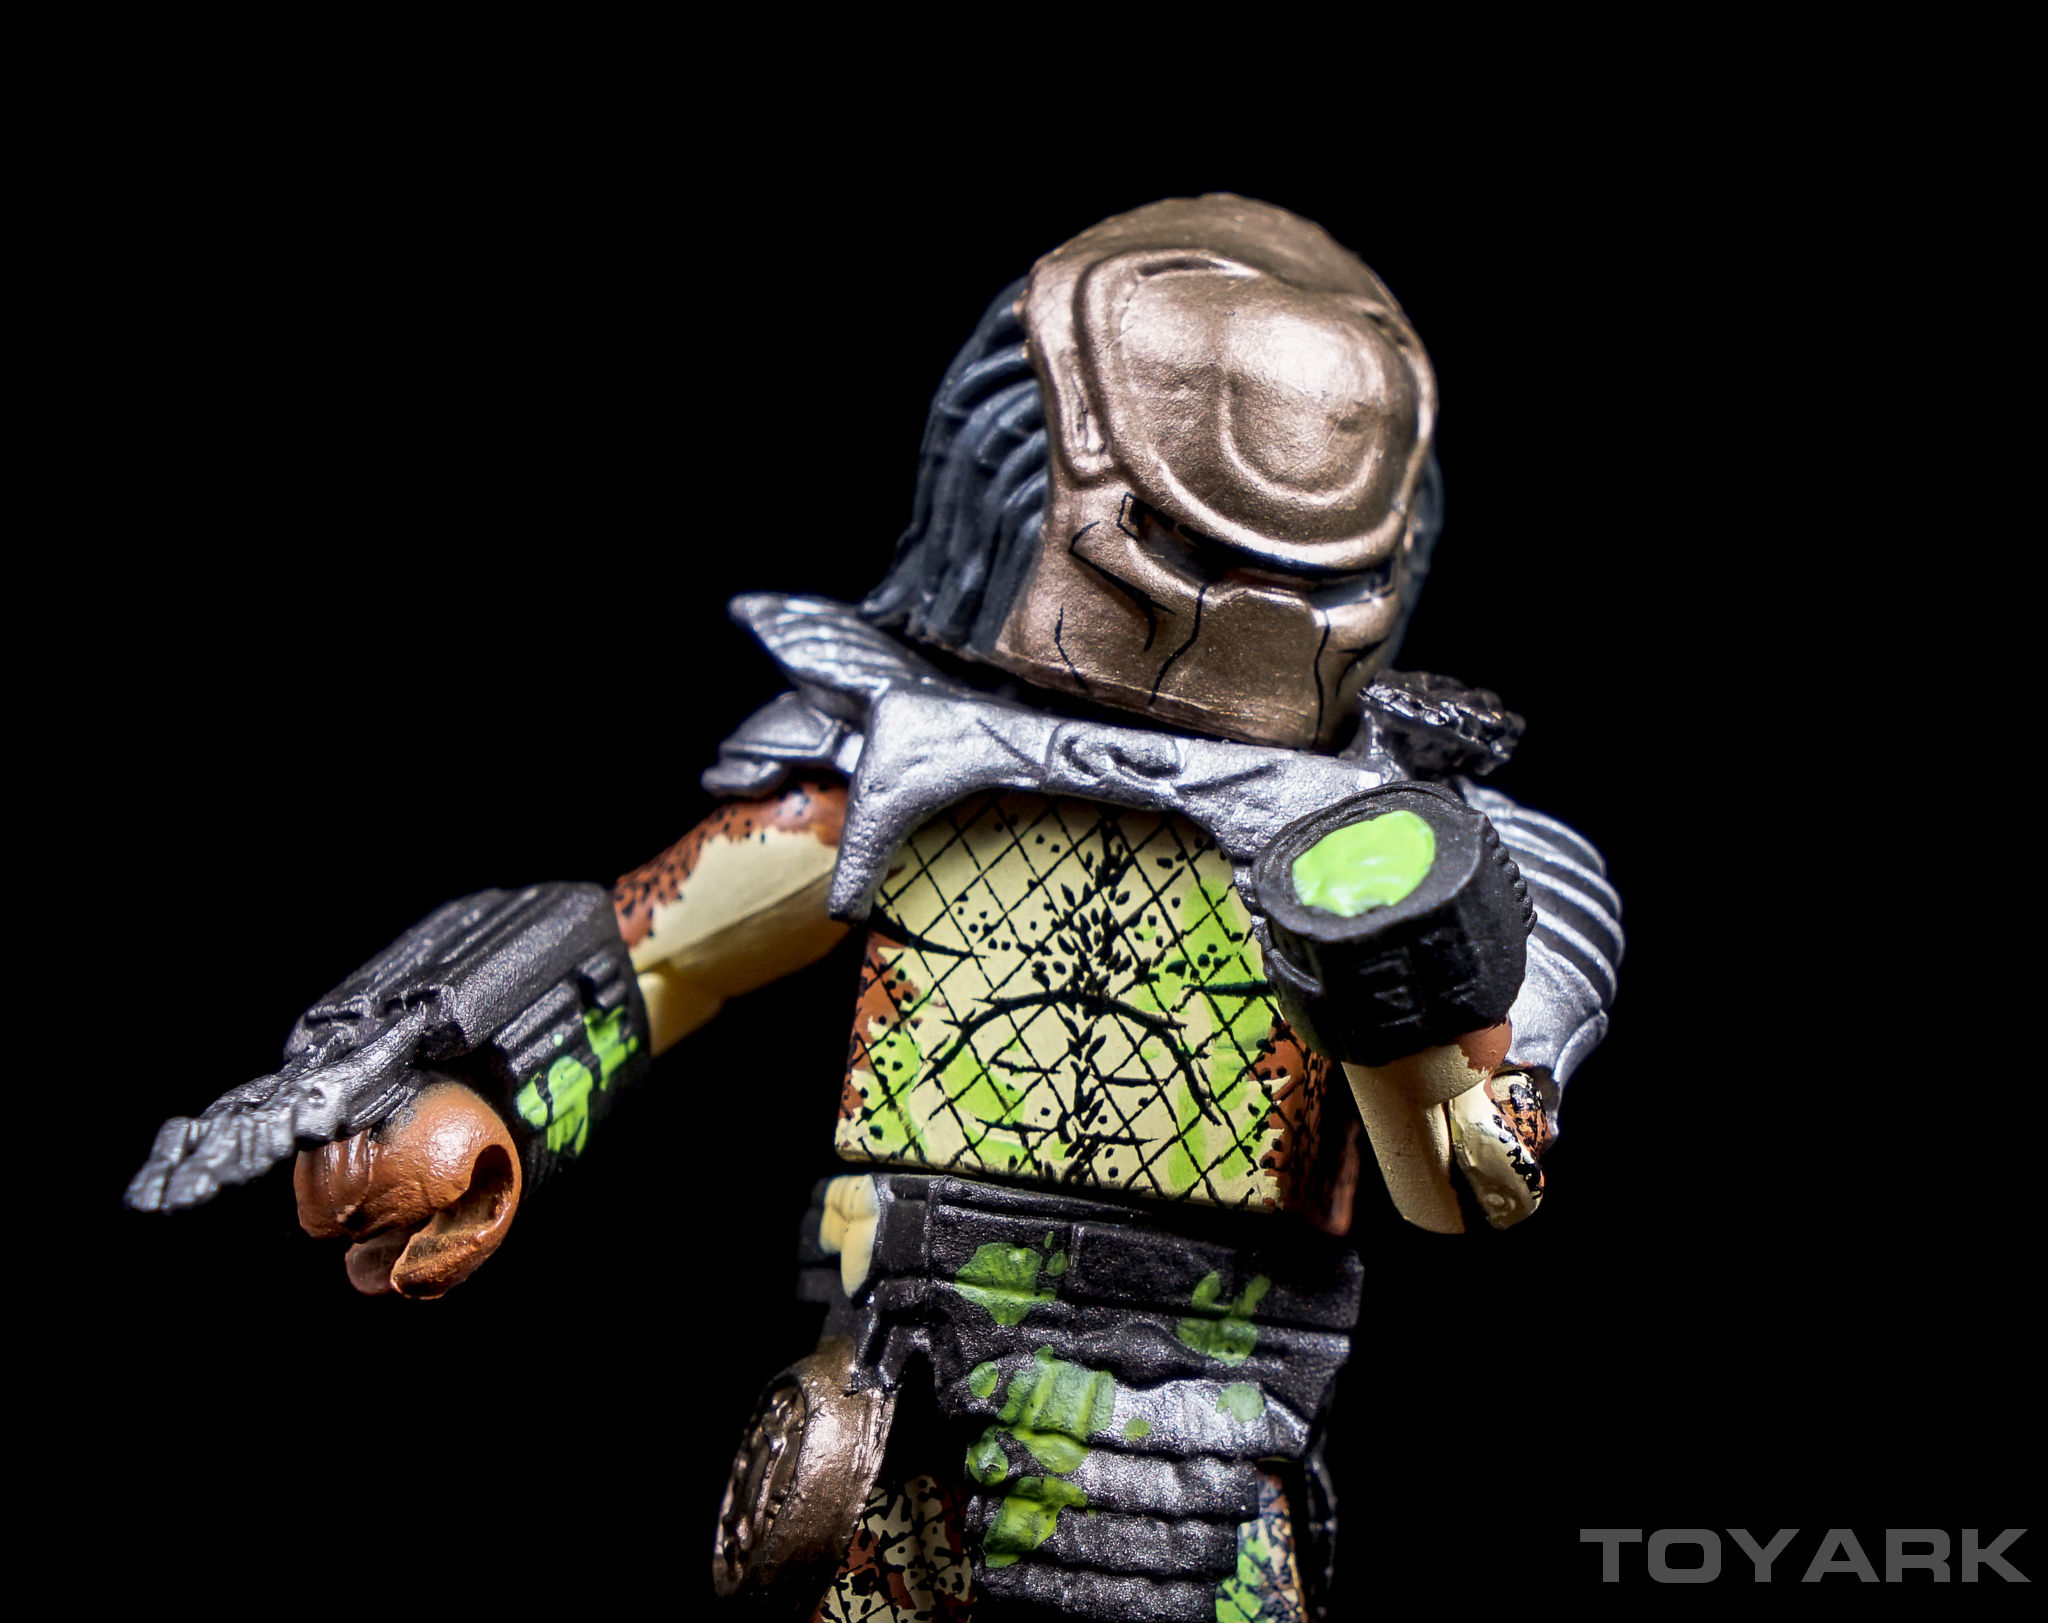 http://news.toyark.com/wp-content/uploads/sites/4/2016/04/Predator-Minimates-Blind-Bagged-066.jpg